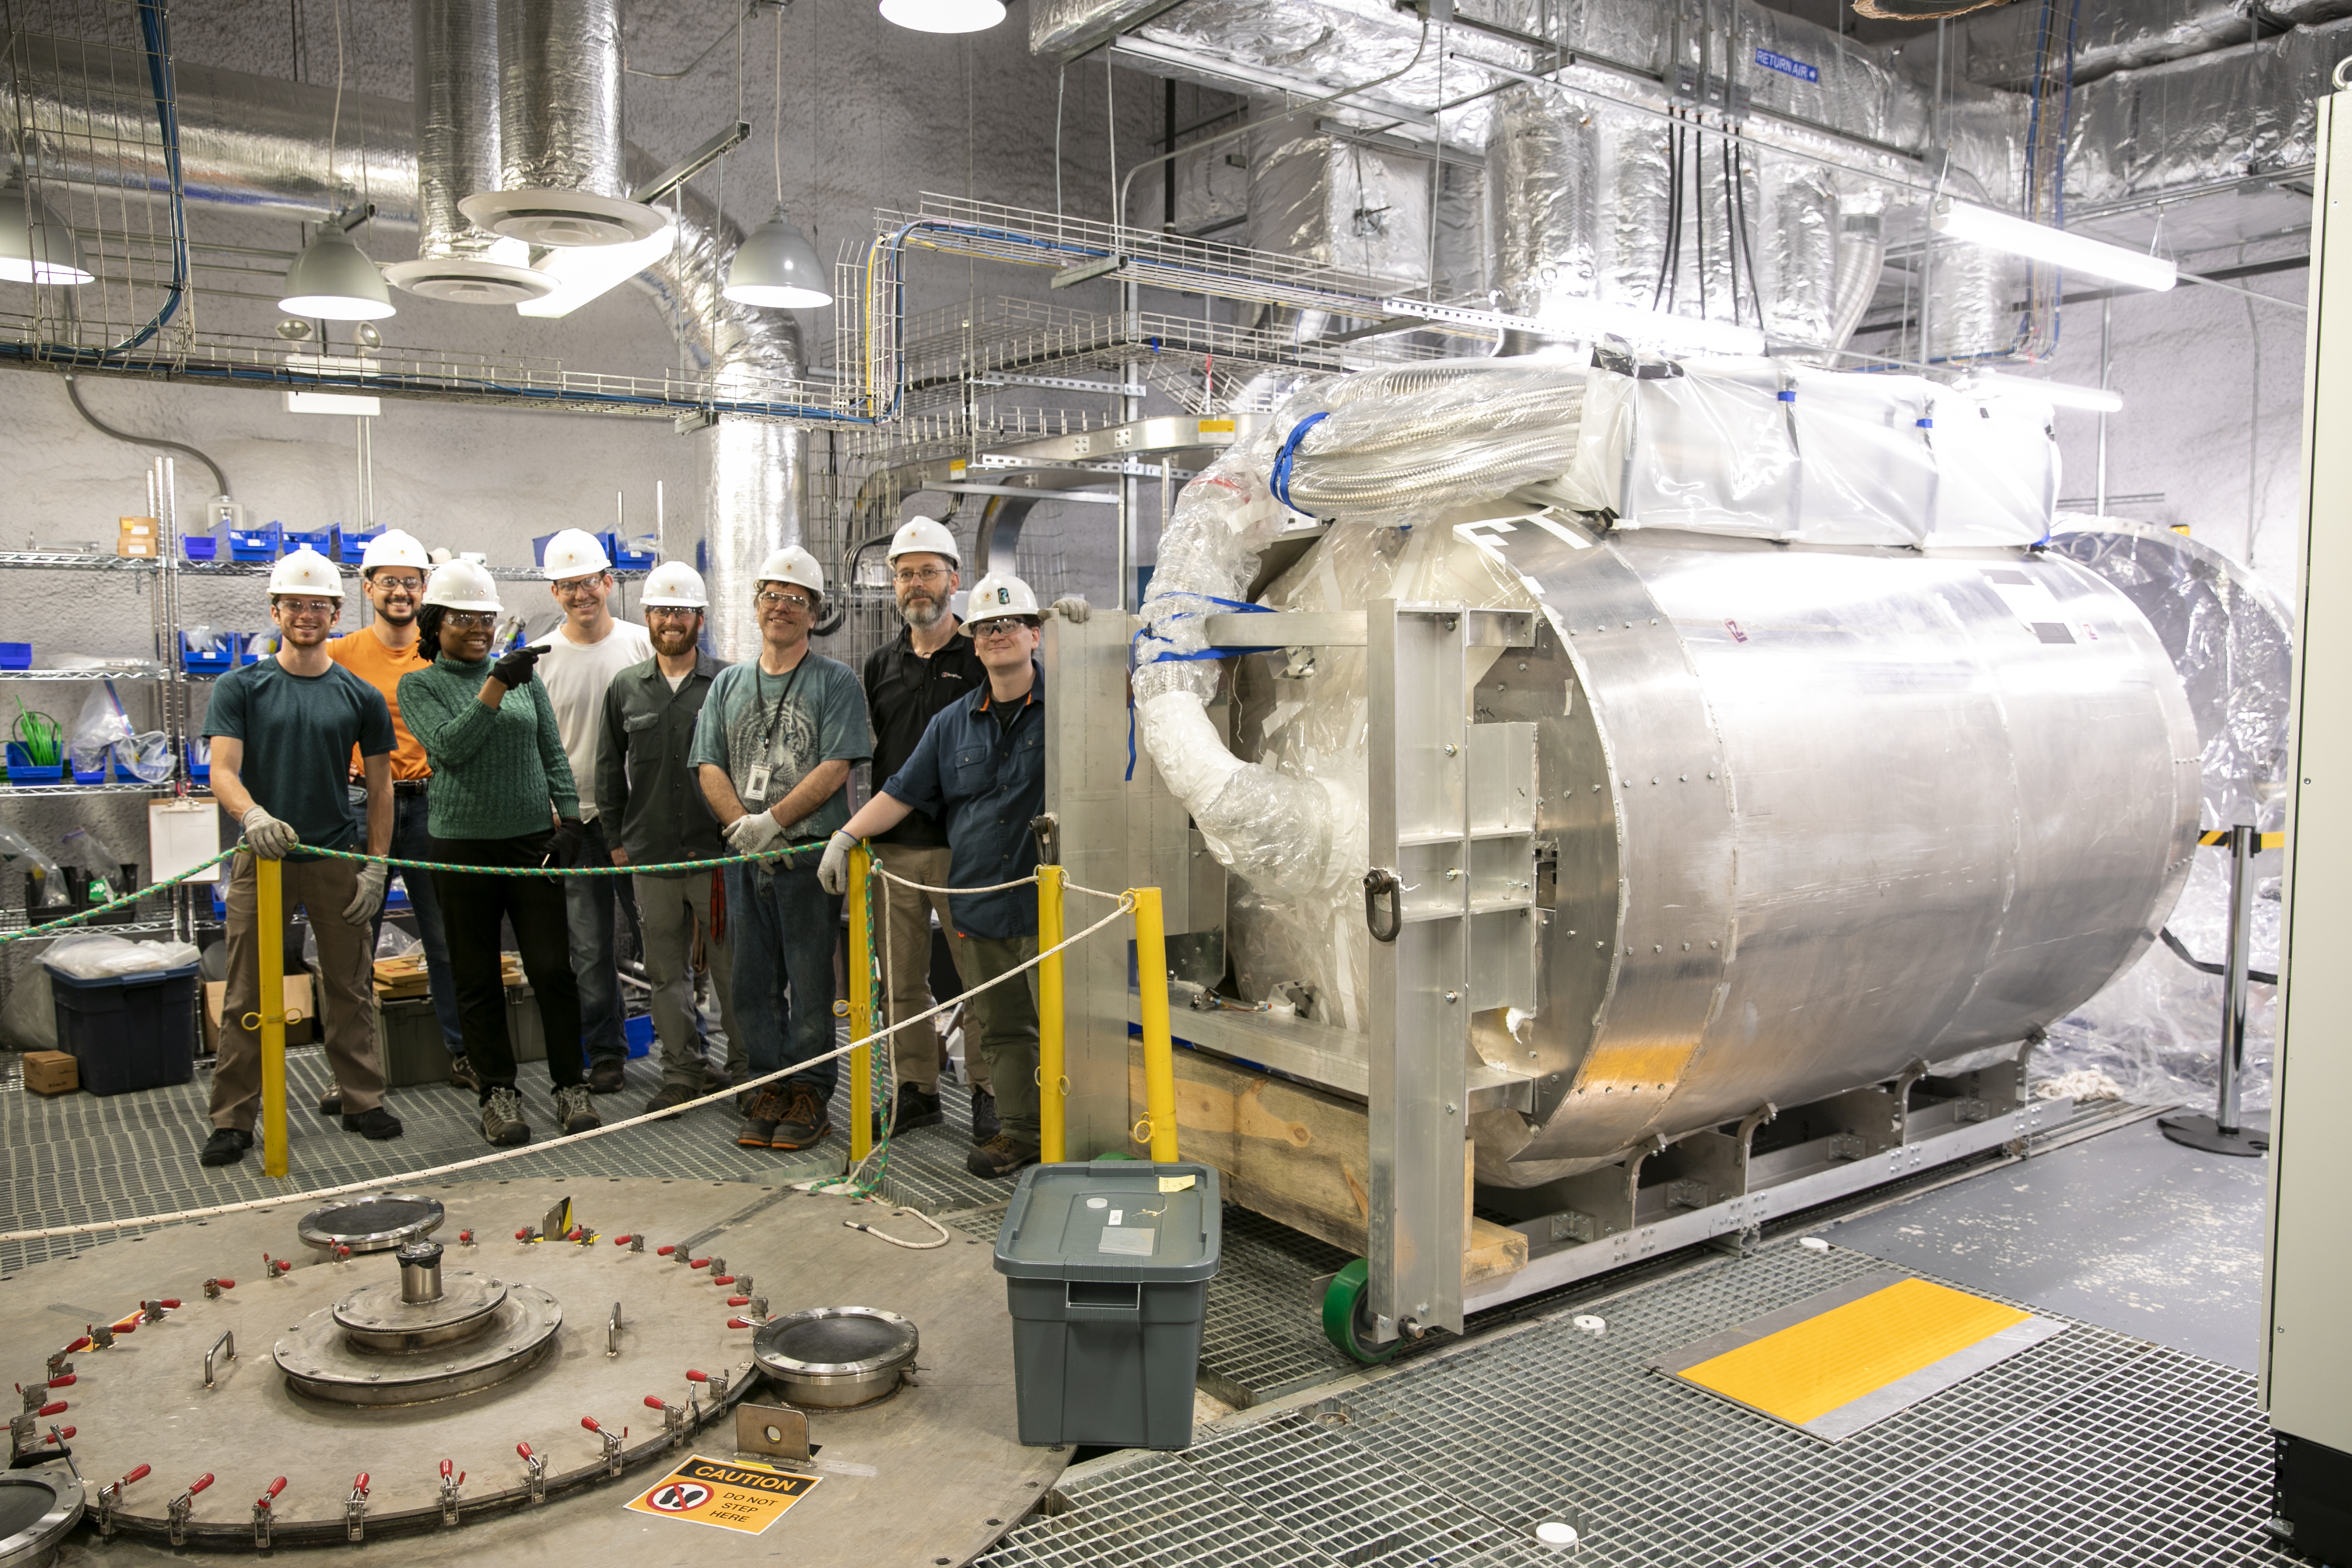 Group of workers stands beside cryostat vessel